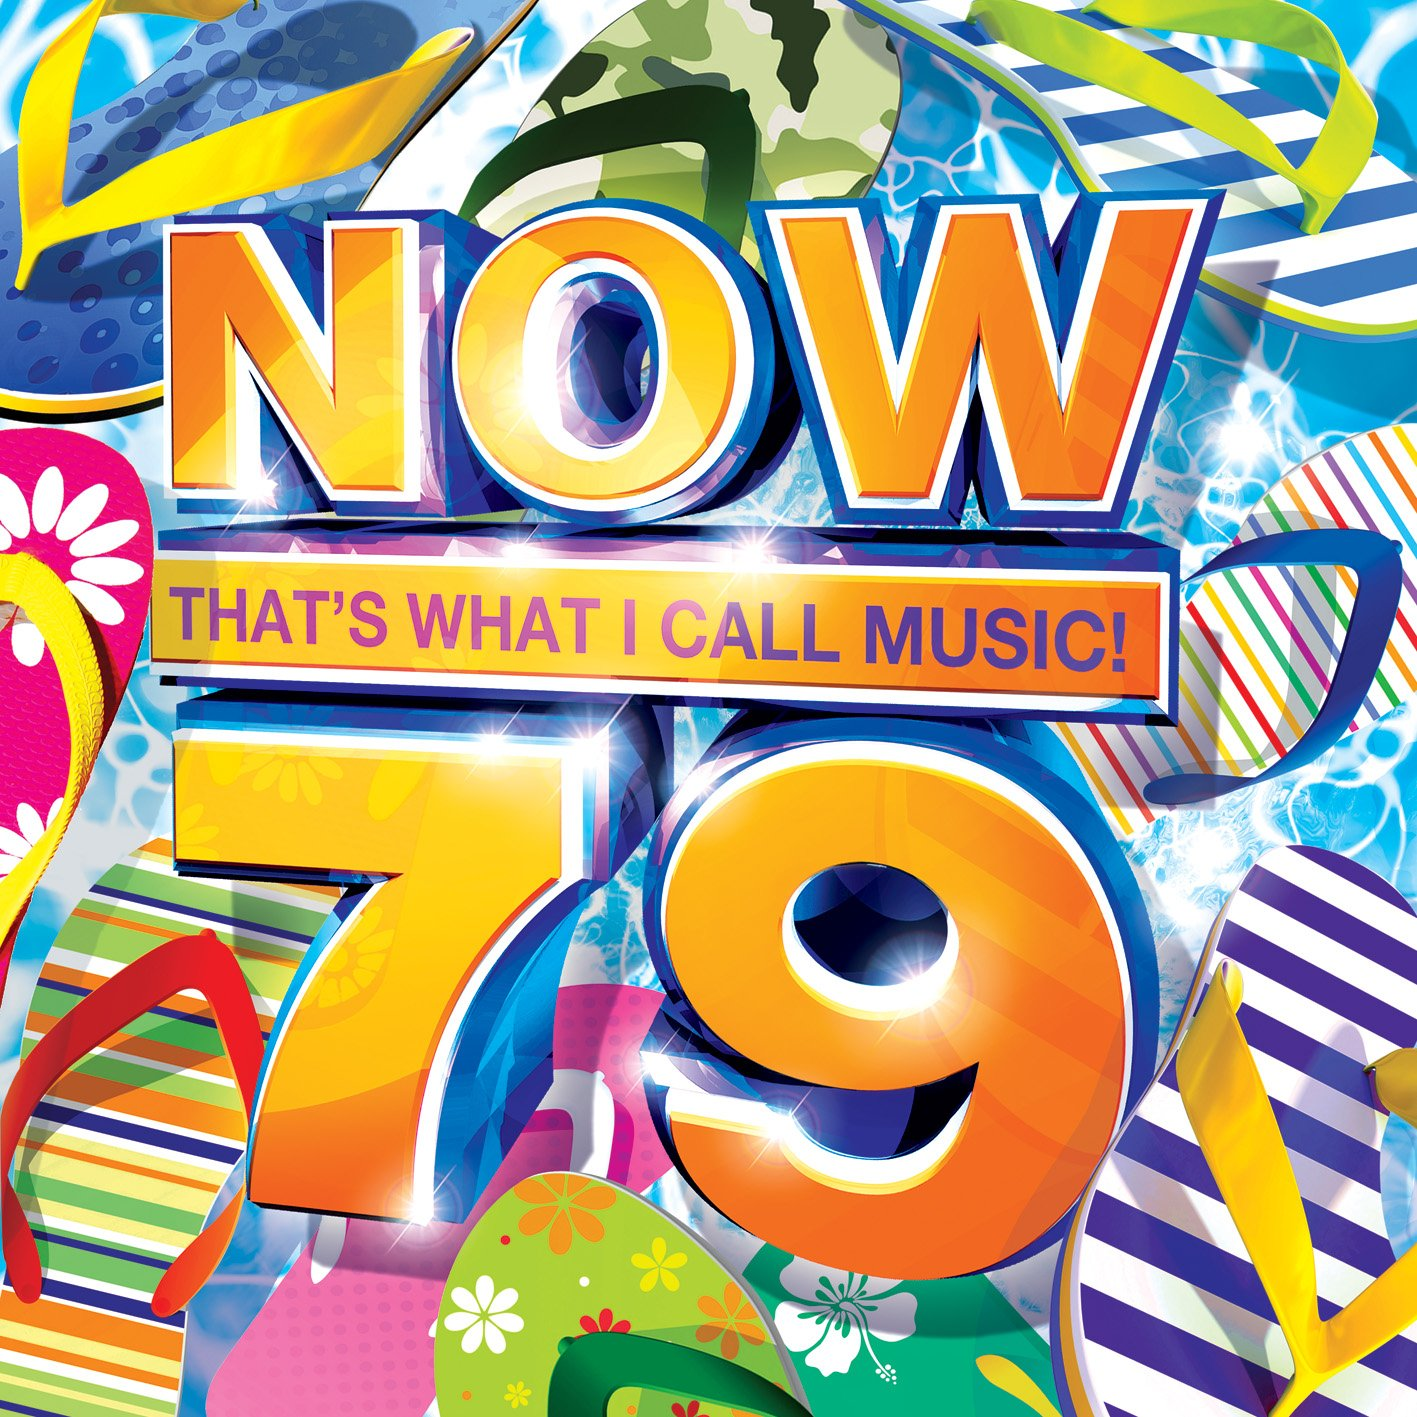 79 Nowmusic The Home Of Hit Music Now That 39s What I Call